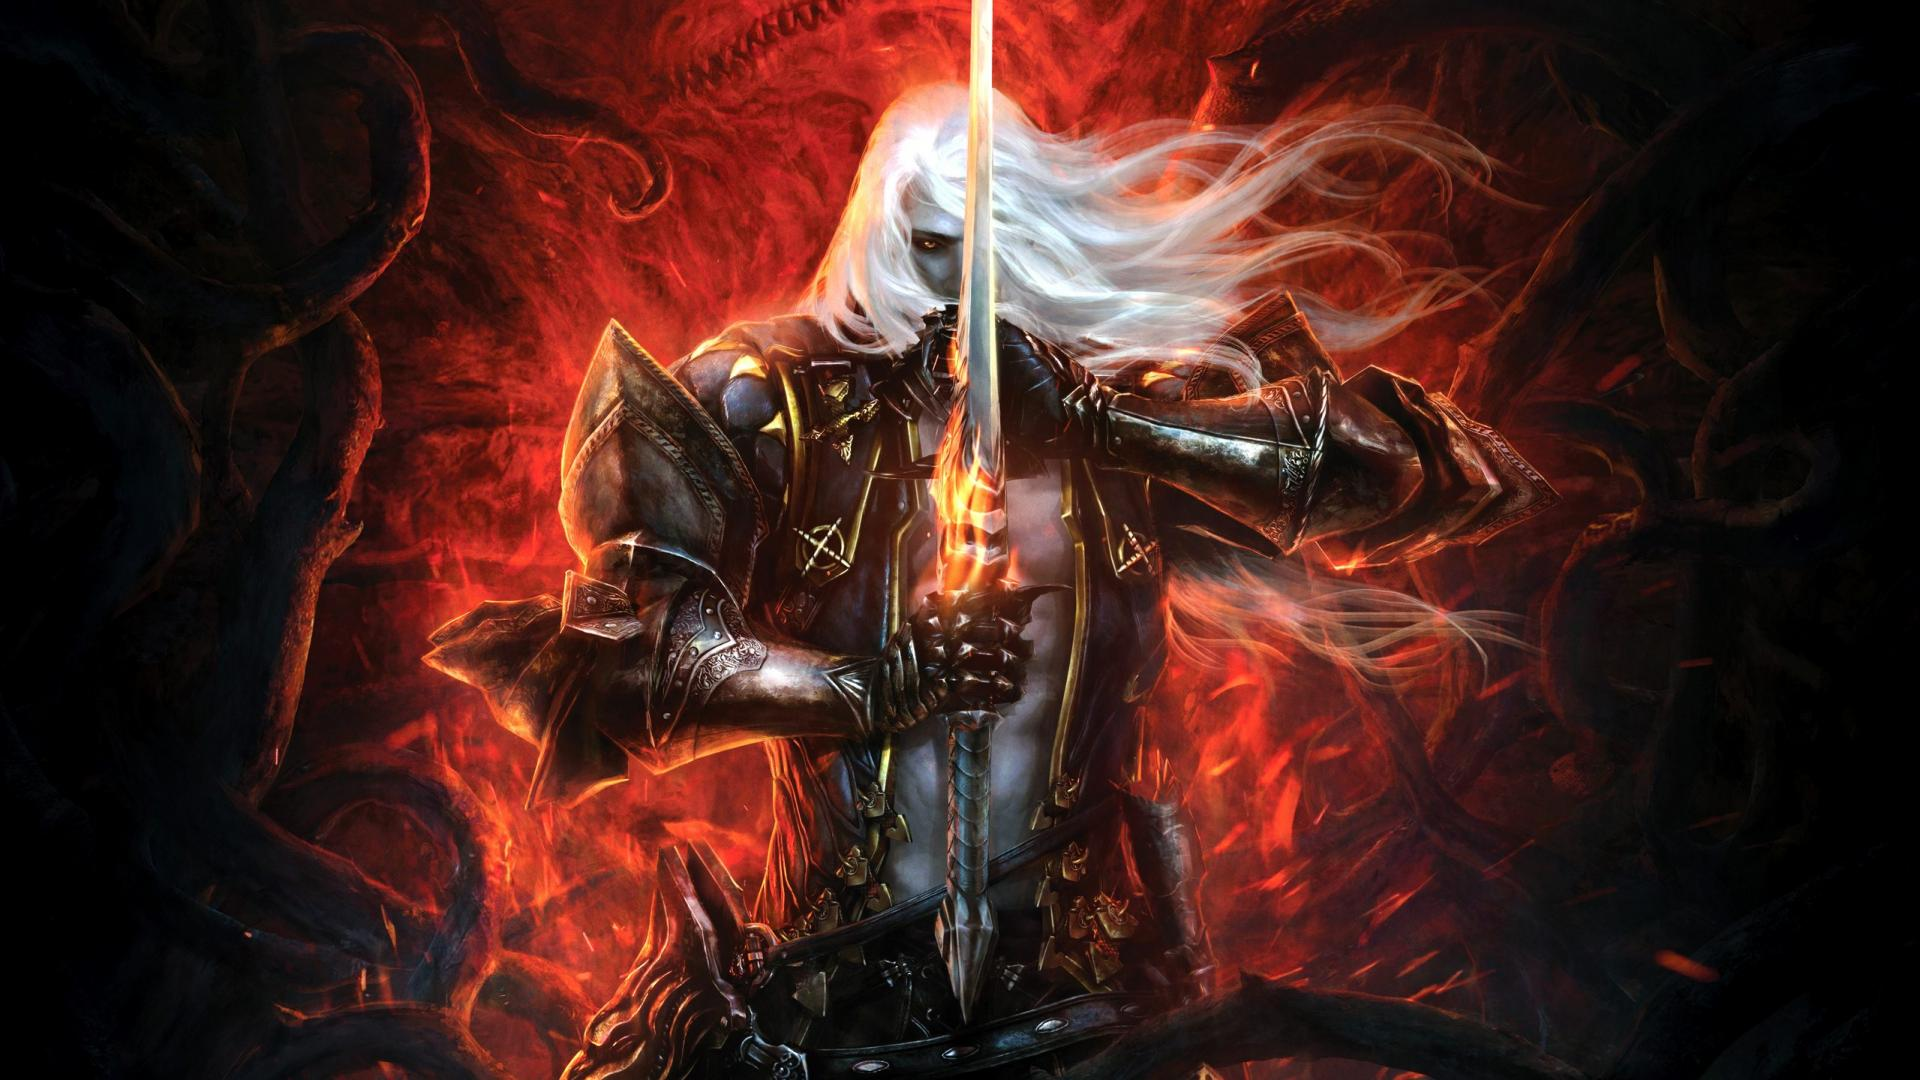 castlevania-lords-of-shadow-mirror-of-fate-1080x1920